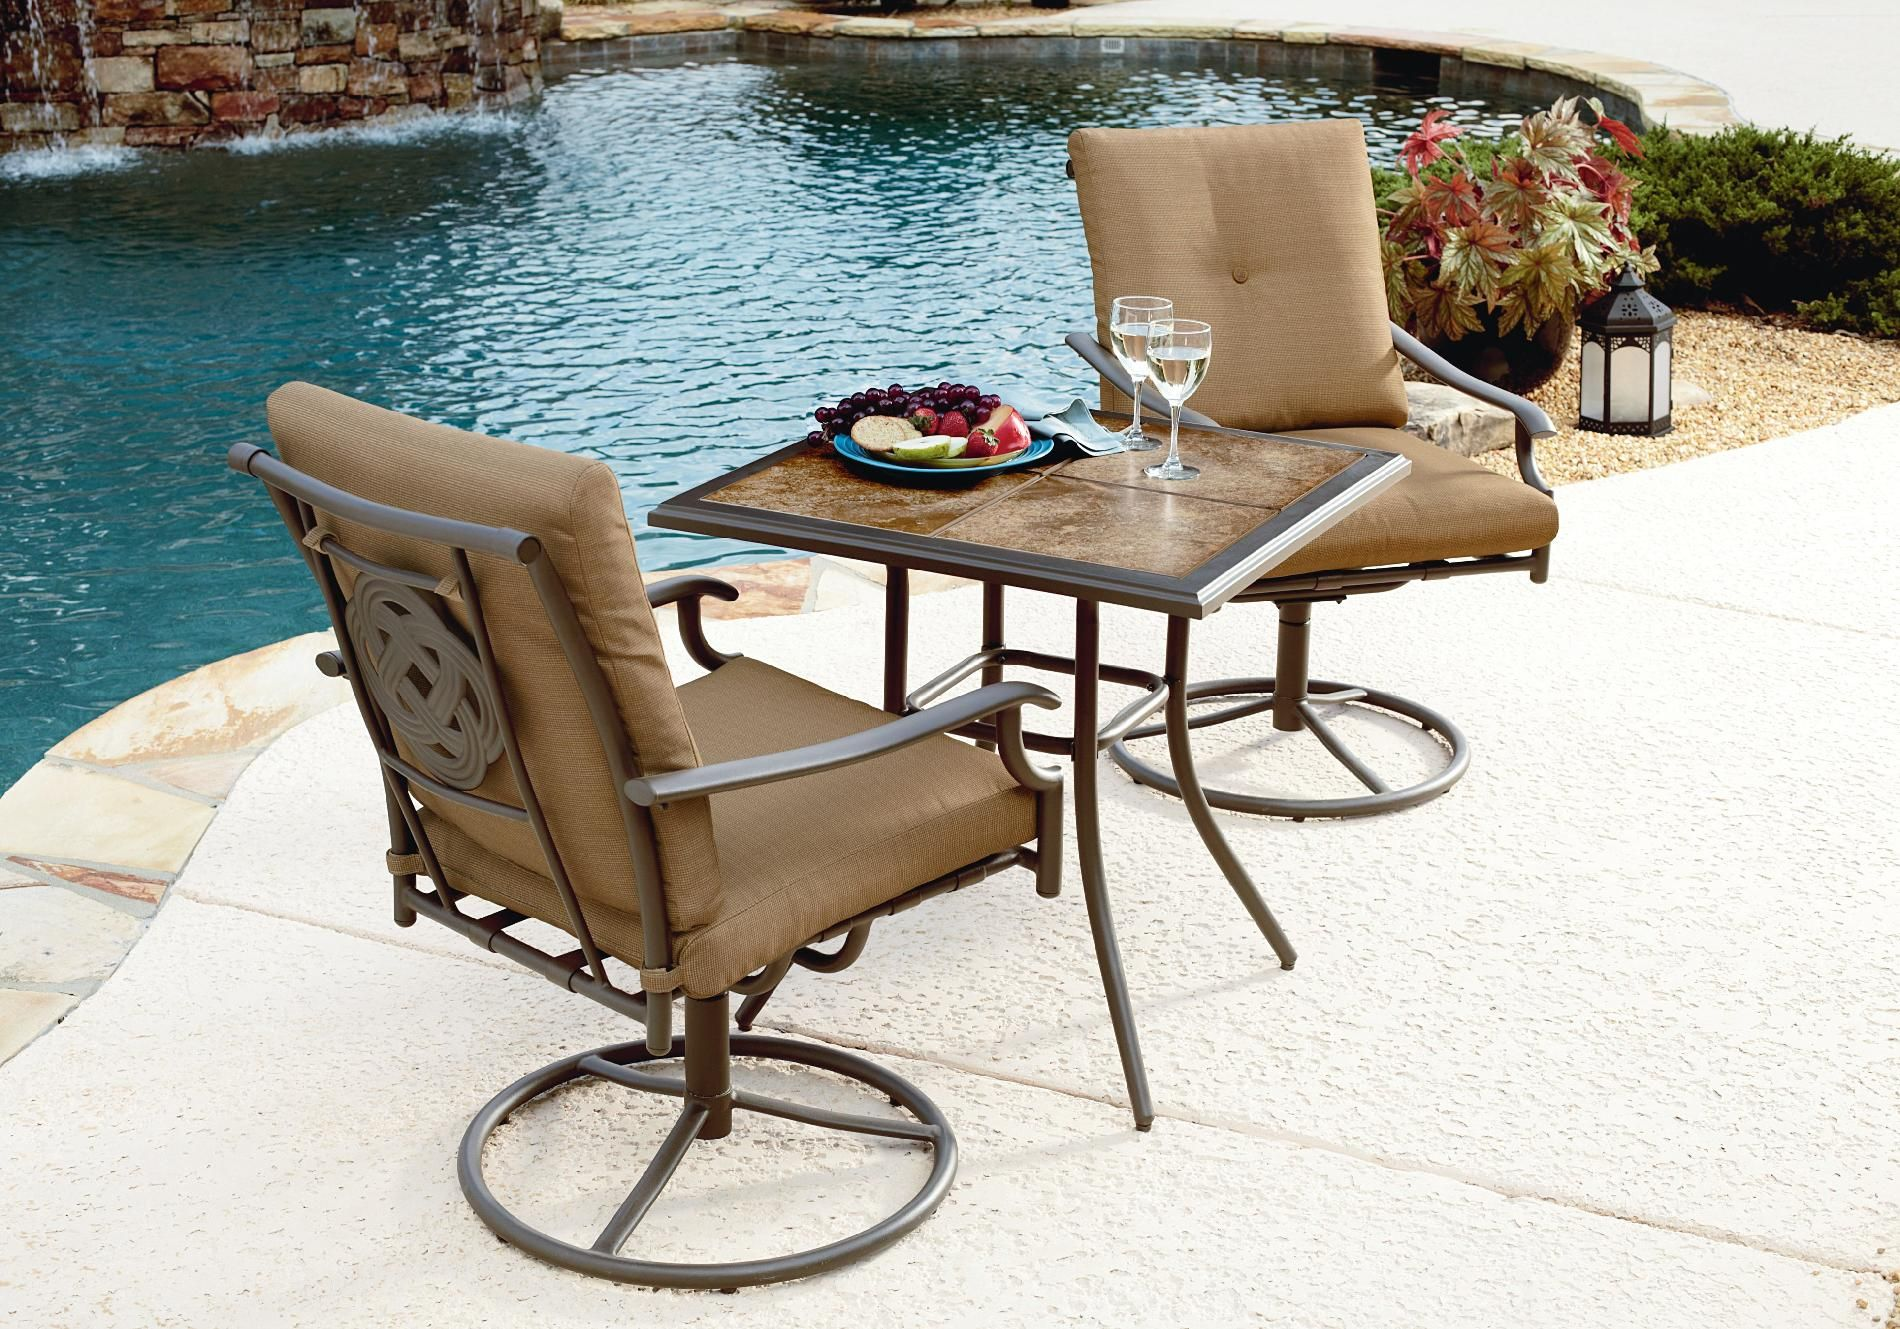 white chairs sets outdoor furniture for small spaces | Garden Oasis Emery 3pc Bistro Set - Outdoor Living - Patio ...